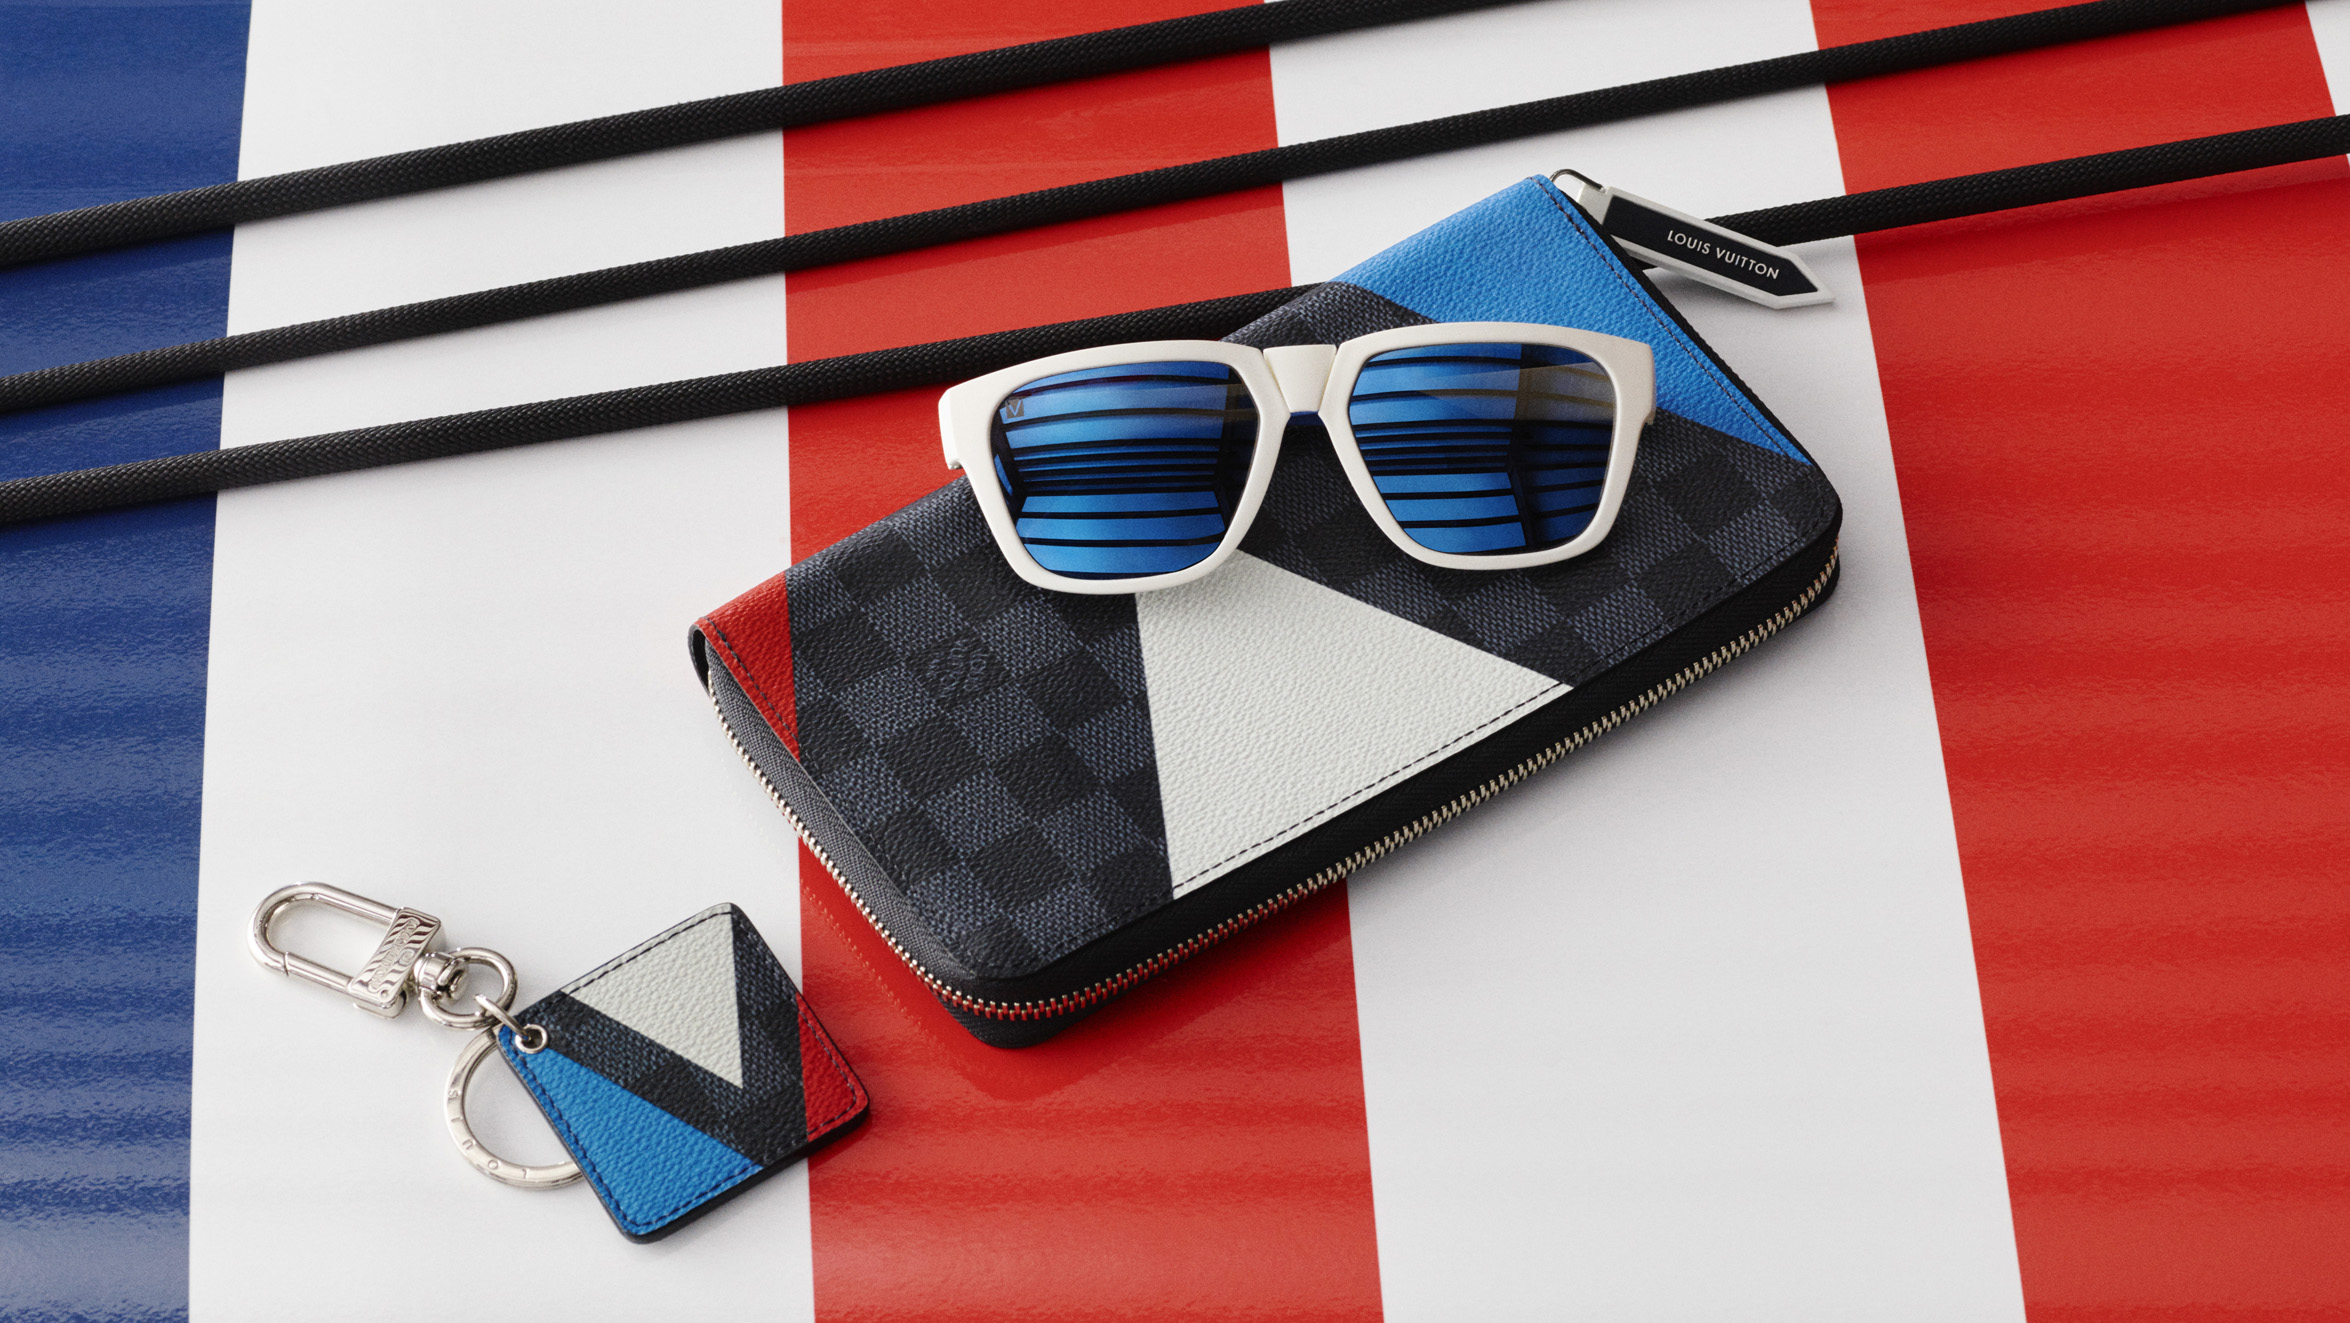 Items from the Louis Vuitton America's Cup collection